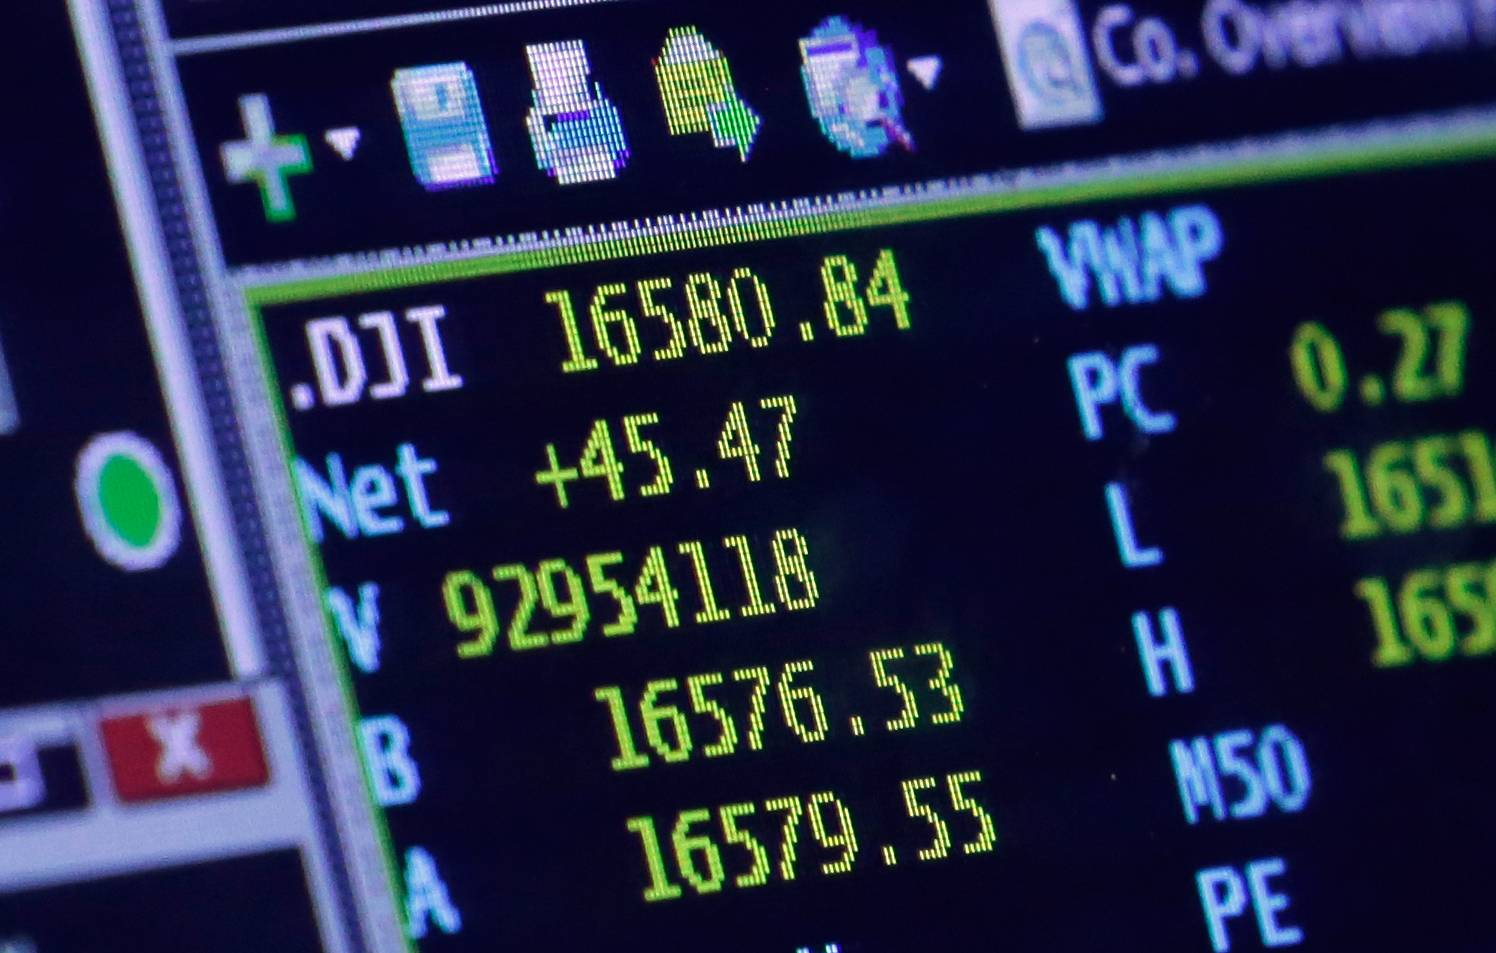 ASSOCIATED PRESSA screen at a trading post on the floor of the New York Stock Exchange shows the closing number for the Dow Jones industrial average Wednesday. The DJIA closed at an all-time high, with a gain of 45 points to 16,580, four points above the record high it set on Dec. 31, 2013.